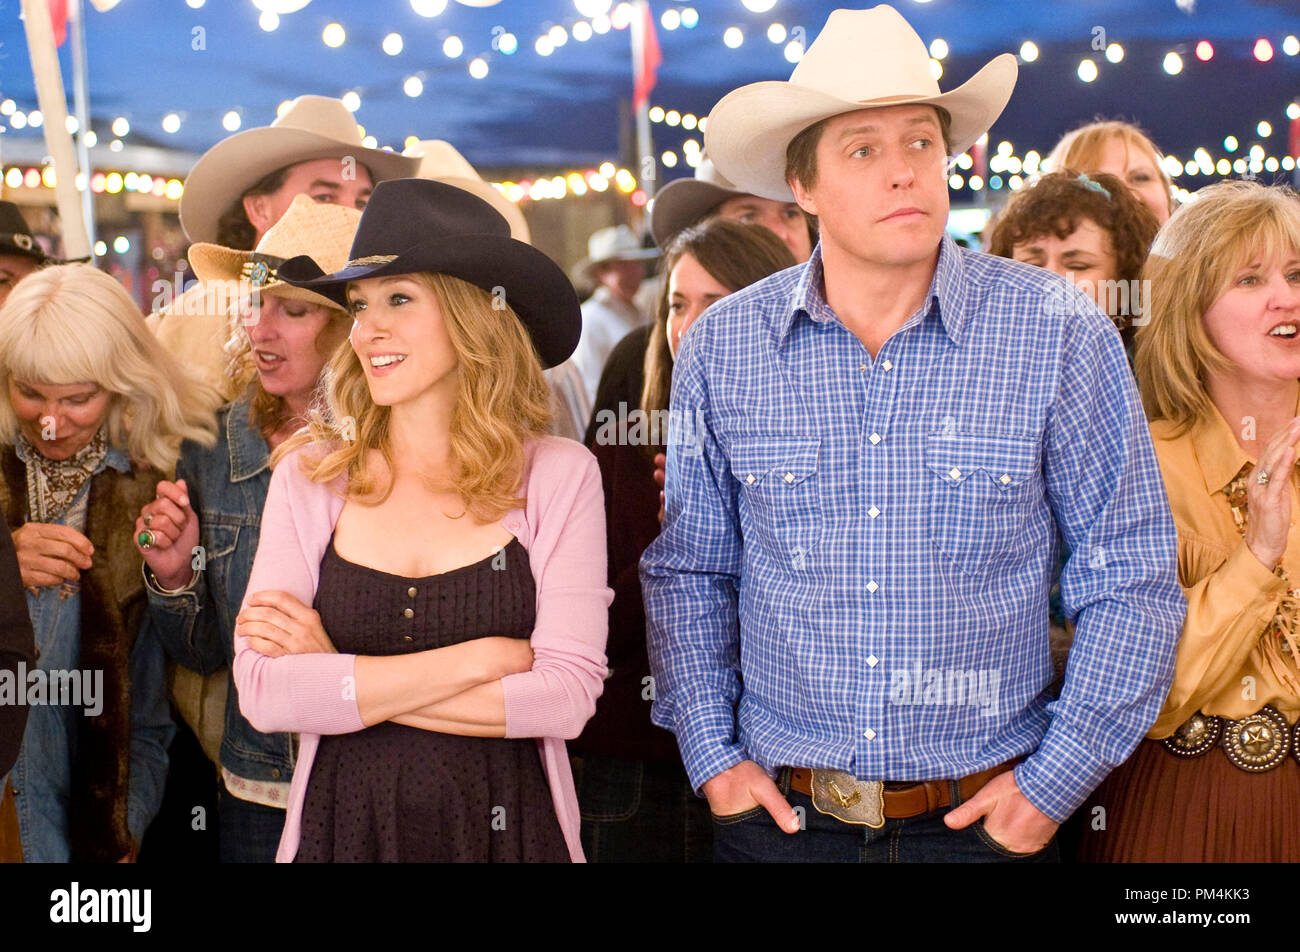 Sarah Jessica Parker and Hugh Grant star in Columbia Pictures' comedy DID YOU HEAR ABOUT THE MORGANS? - Stock Image